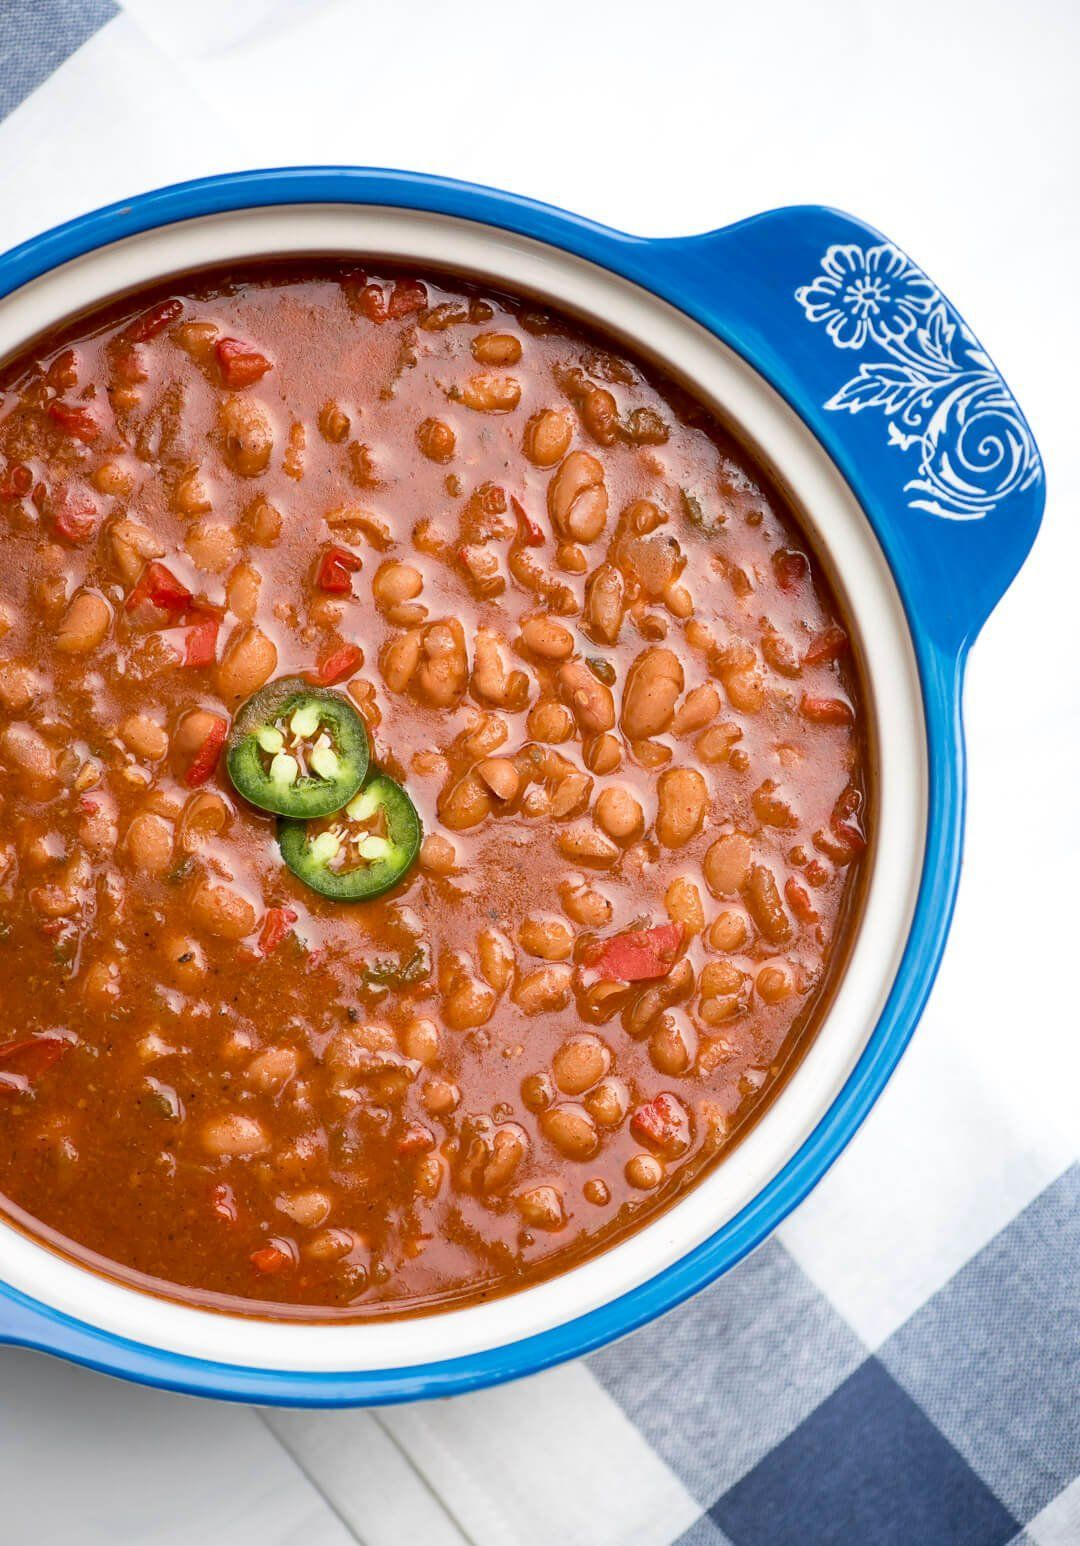 Poppins reccomend Bean pot with mexican on bottom